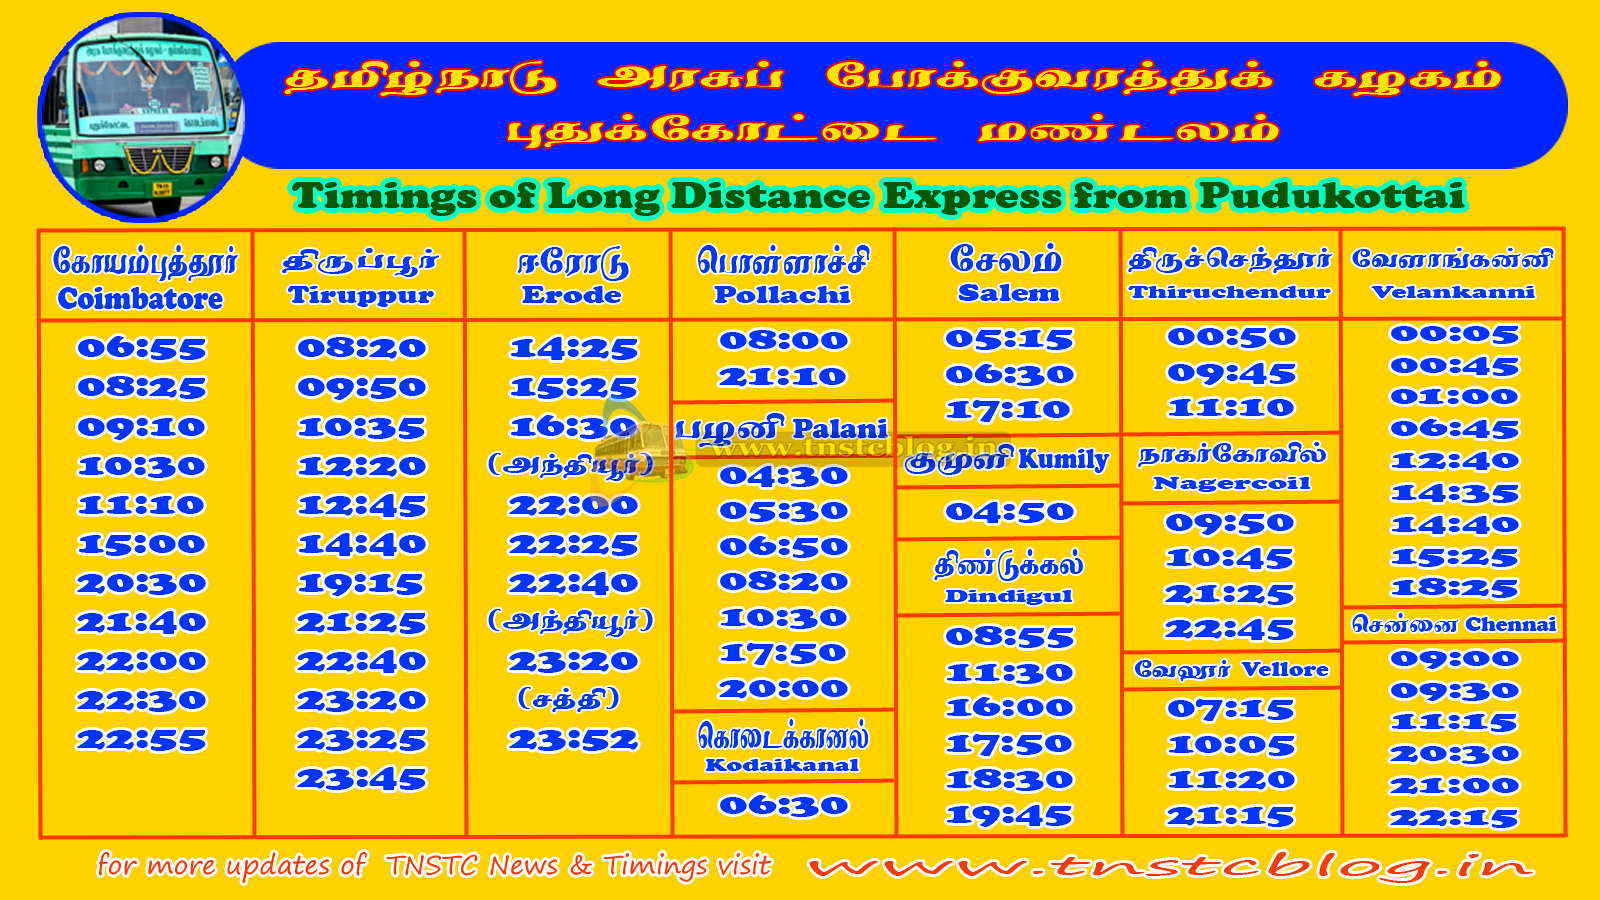 Long Distance Express Timings from Pudukkottai